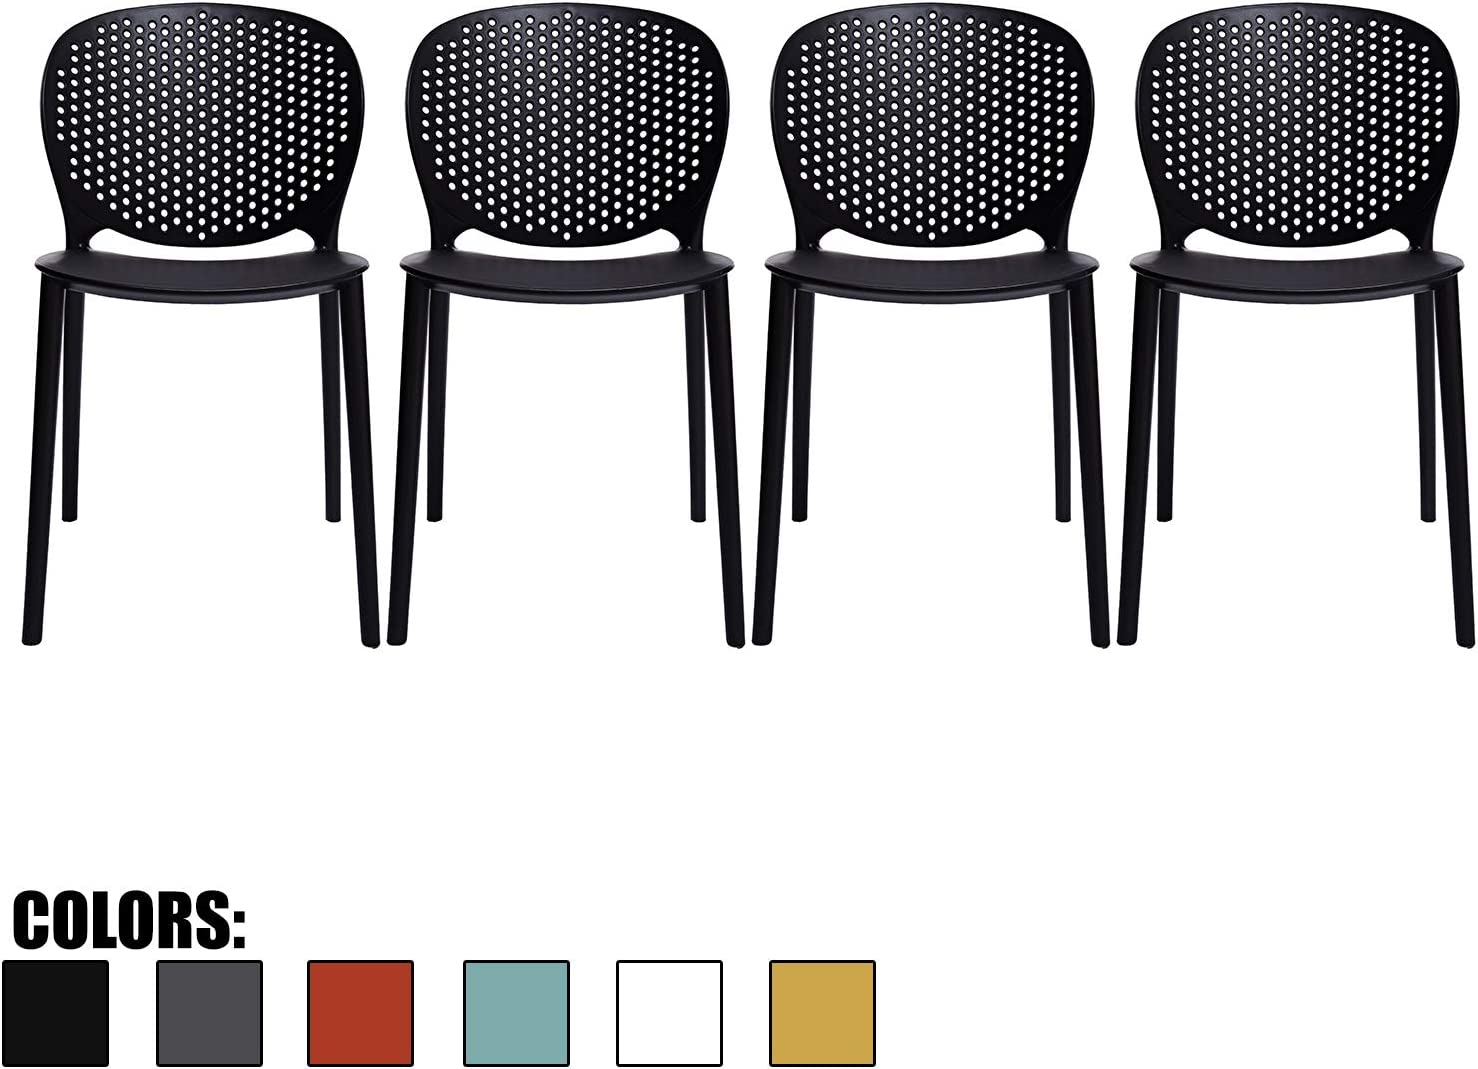 2xhome Set of 4 Dark Black Contemporary Modern Stackable Assembled Plastic Chair Molded with Back Armless Side Matte for Dining Room Outdoor Garden Patio Balcony Work Office Desk Kitchen